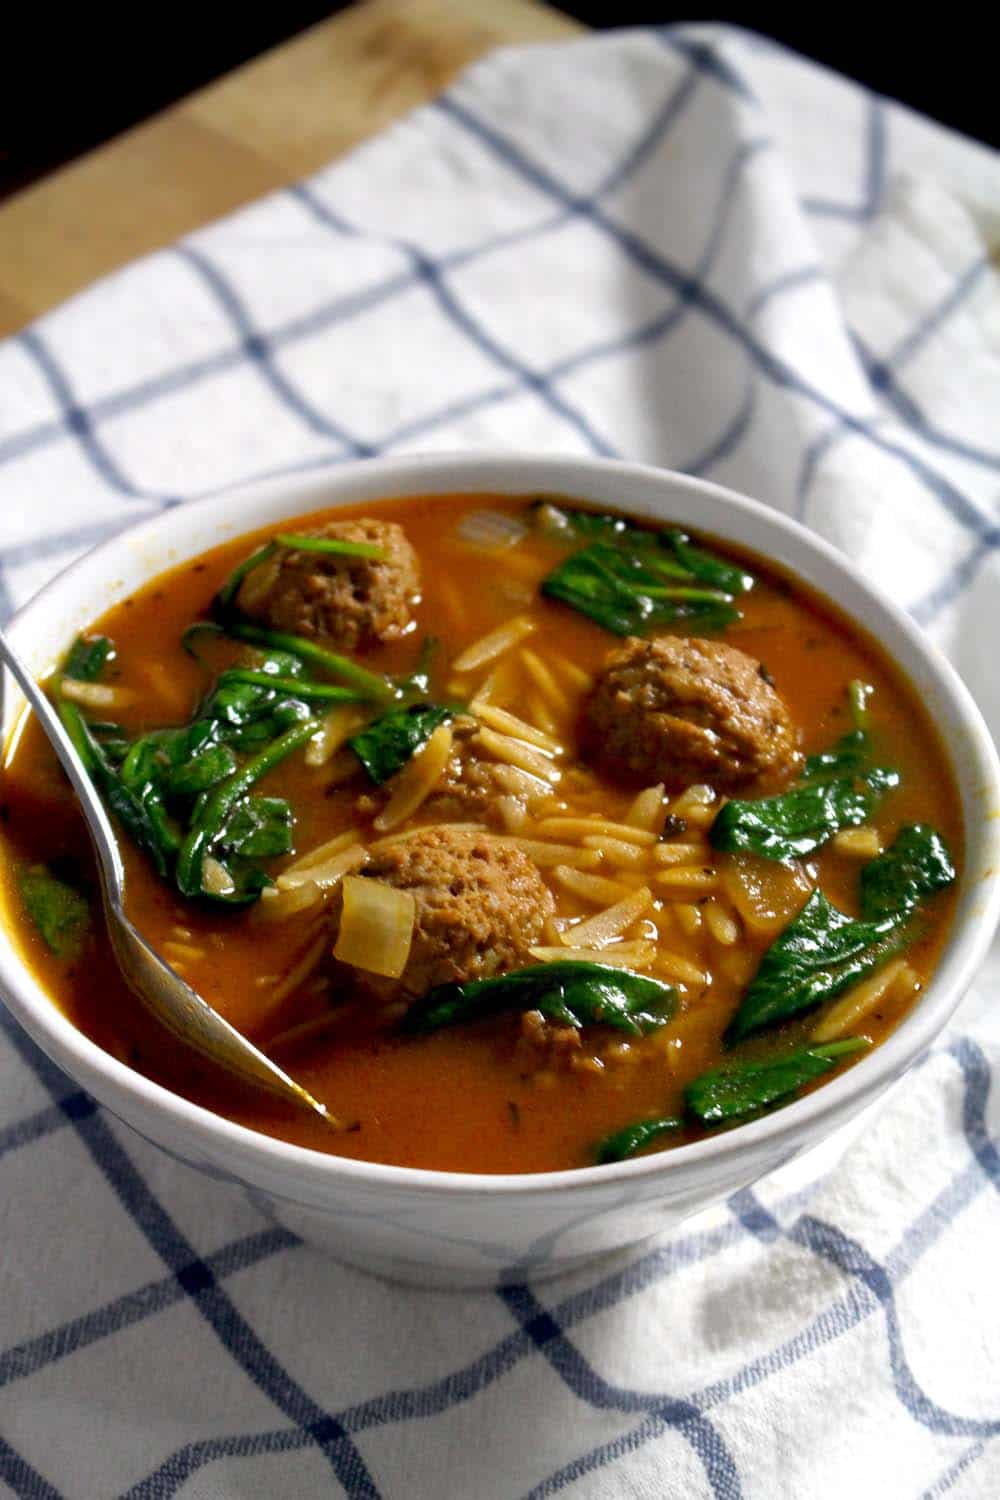 This Italian Spinach Orzo and Meatball Soup is comforting, healthy, and light. The balance between meat, whole grains, and vegetables makes for a well-rounded, soul satisfying meal. Try using leftover Turkey or chicken in place of the meatballs!